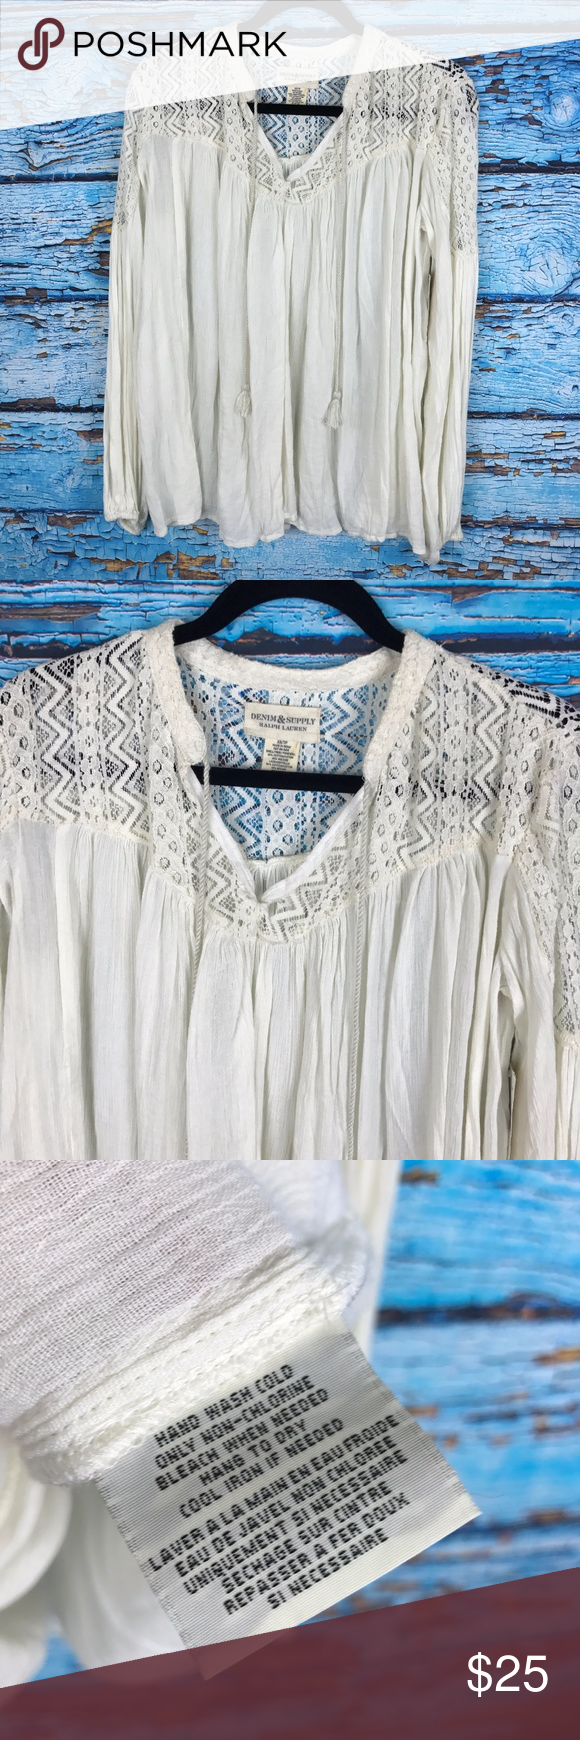 Denim & Supply Ralph Lauren Guaze Lace Peasant Top Denim & Supply Ralph Lauren Womens Sz XS White Gauze Lace Peasant Top Shirt Boho Size XS Armpit to armpit 25 inches Total length from top of shoulder to bottom hem 28 inches  New With Tags Lucky Brand Tops Blouses